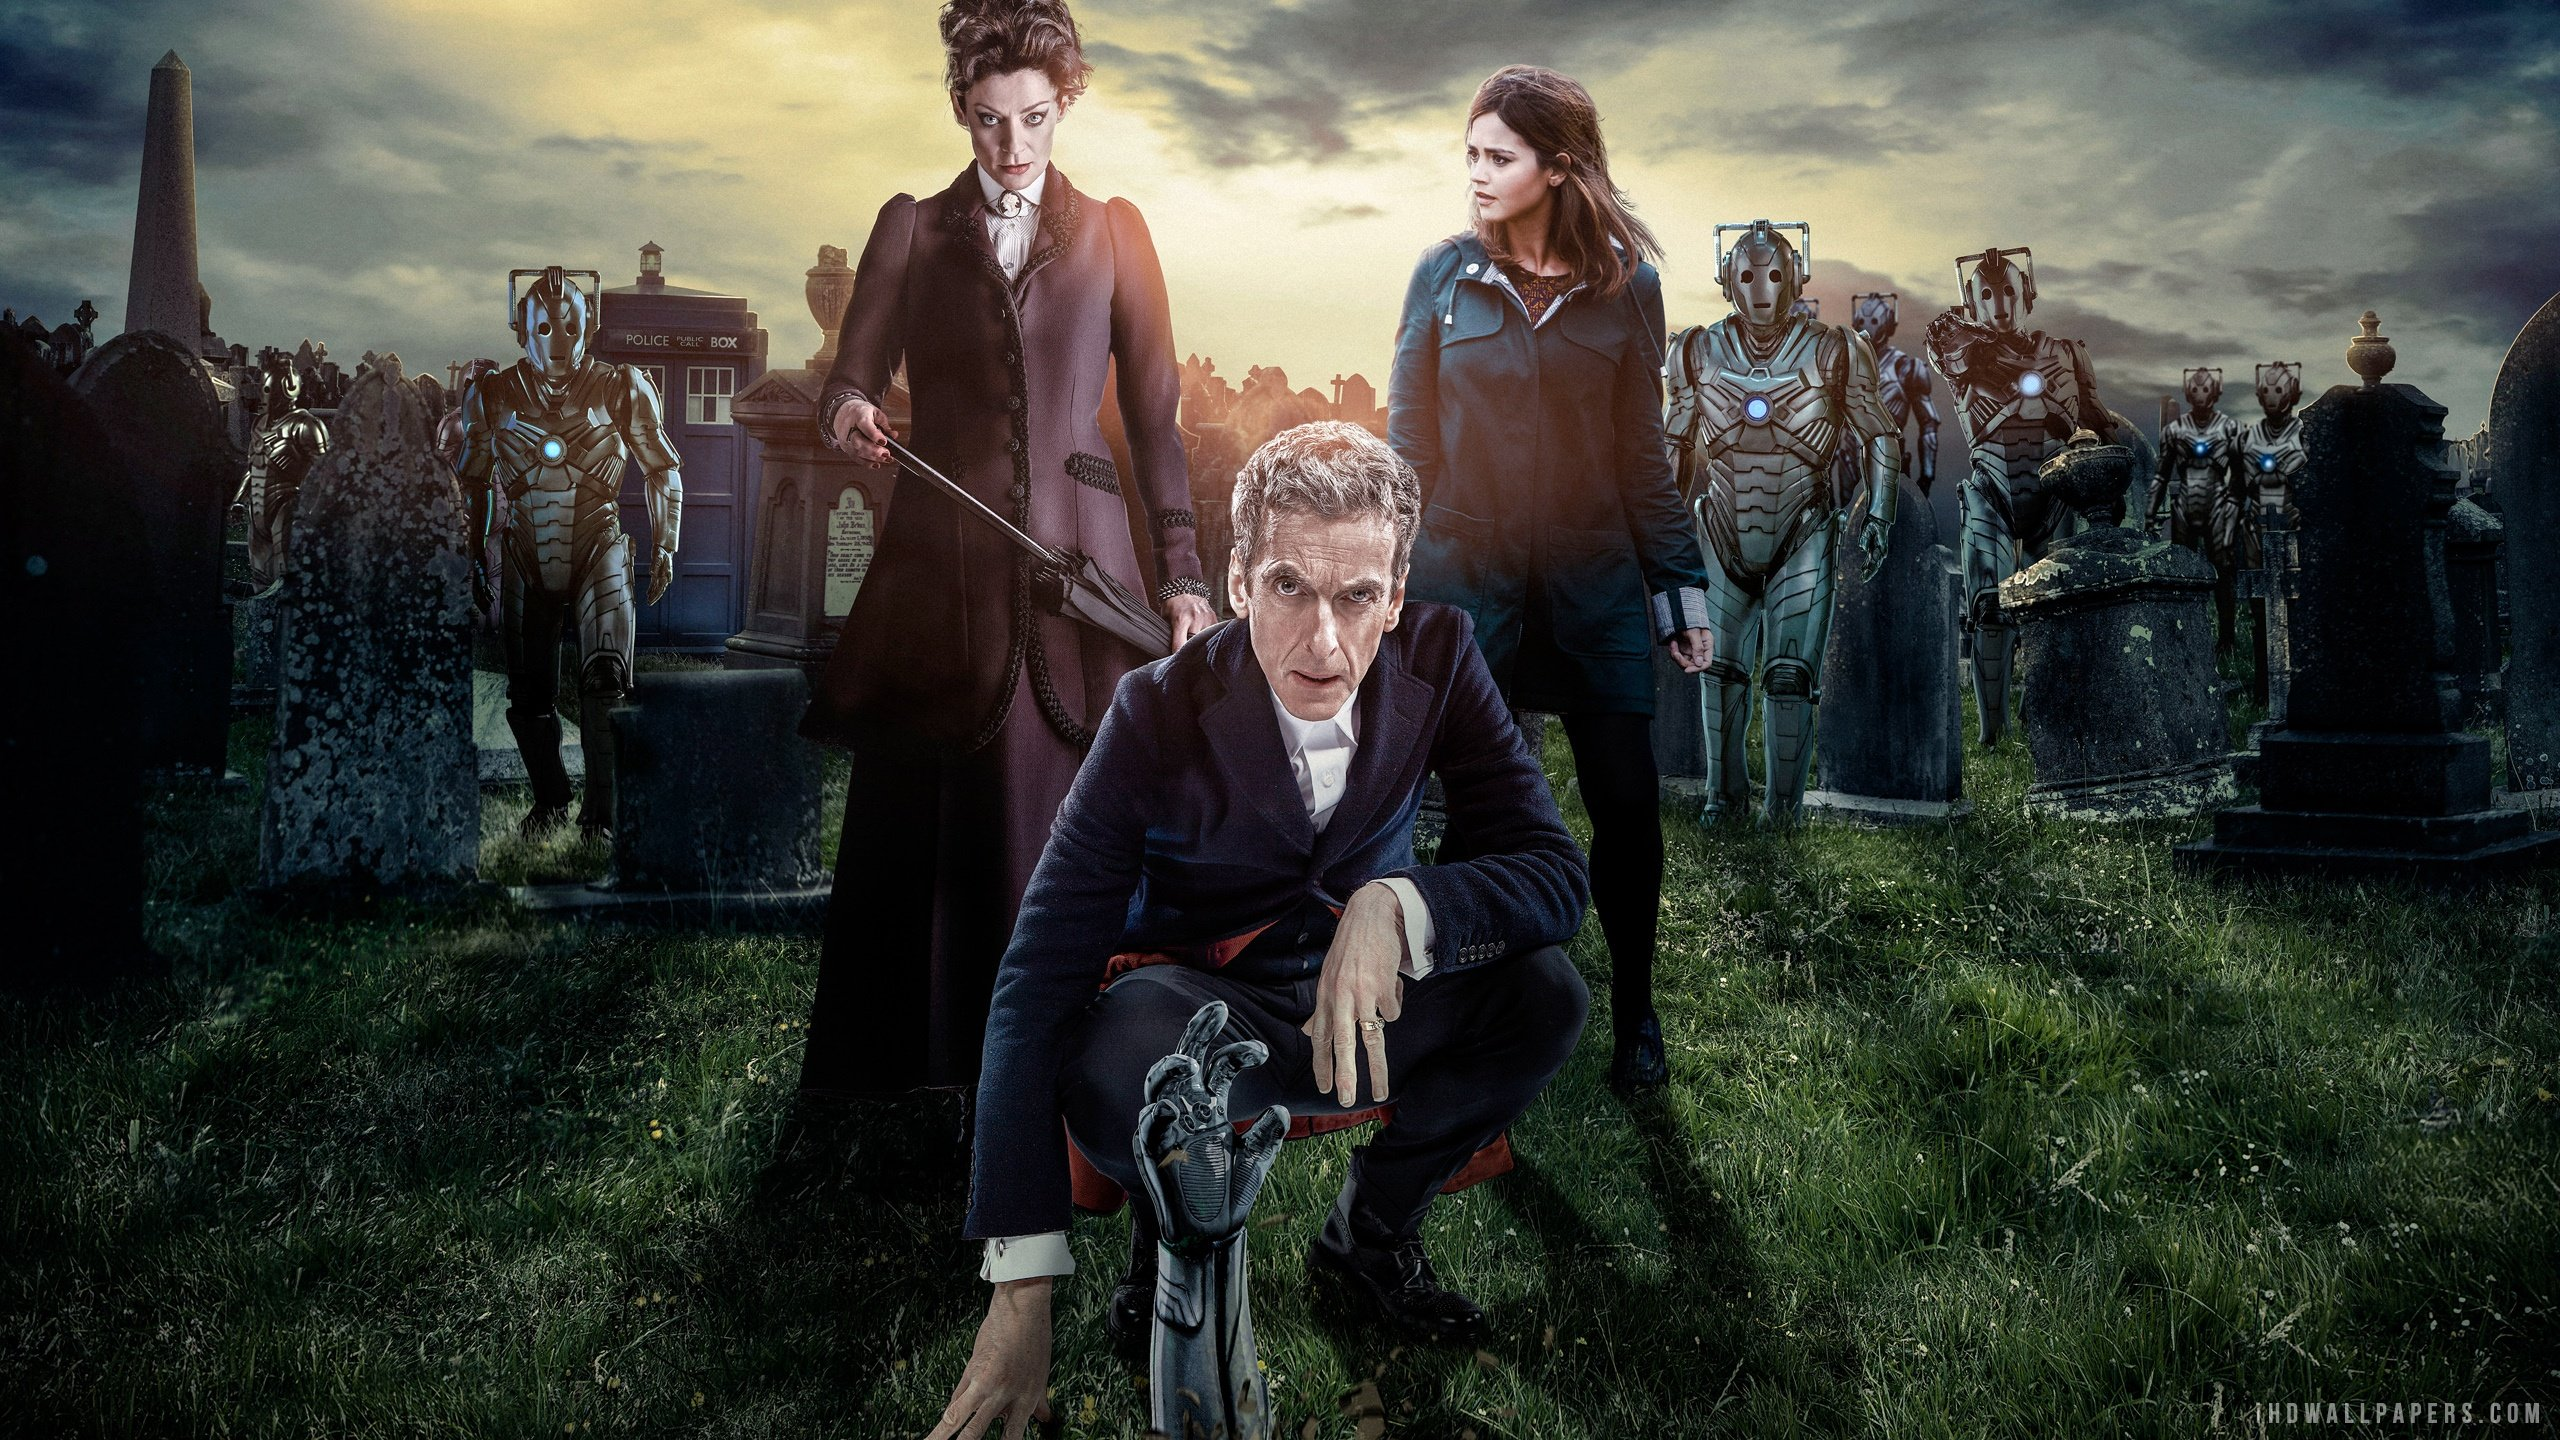 Doctor Who Series 8 Episode 12 Death in Heaven HD Wallpaper   iHD 2560x1440